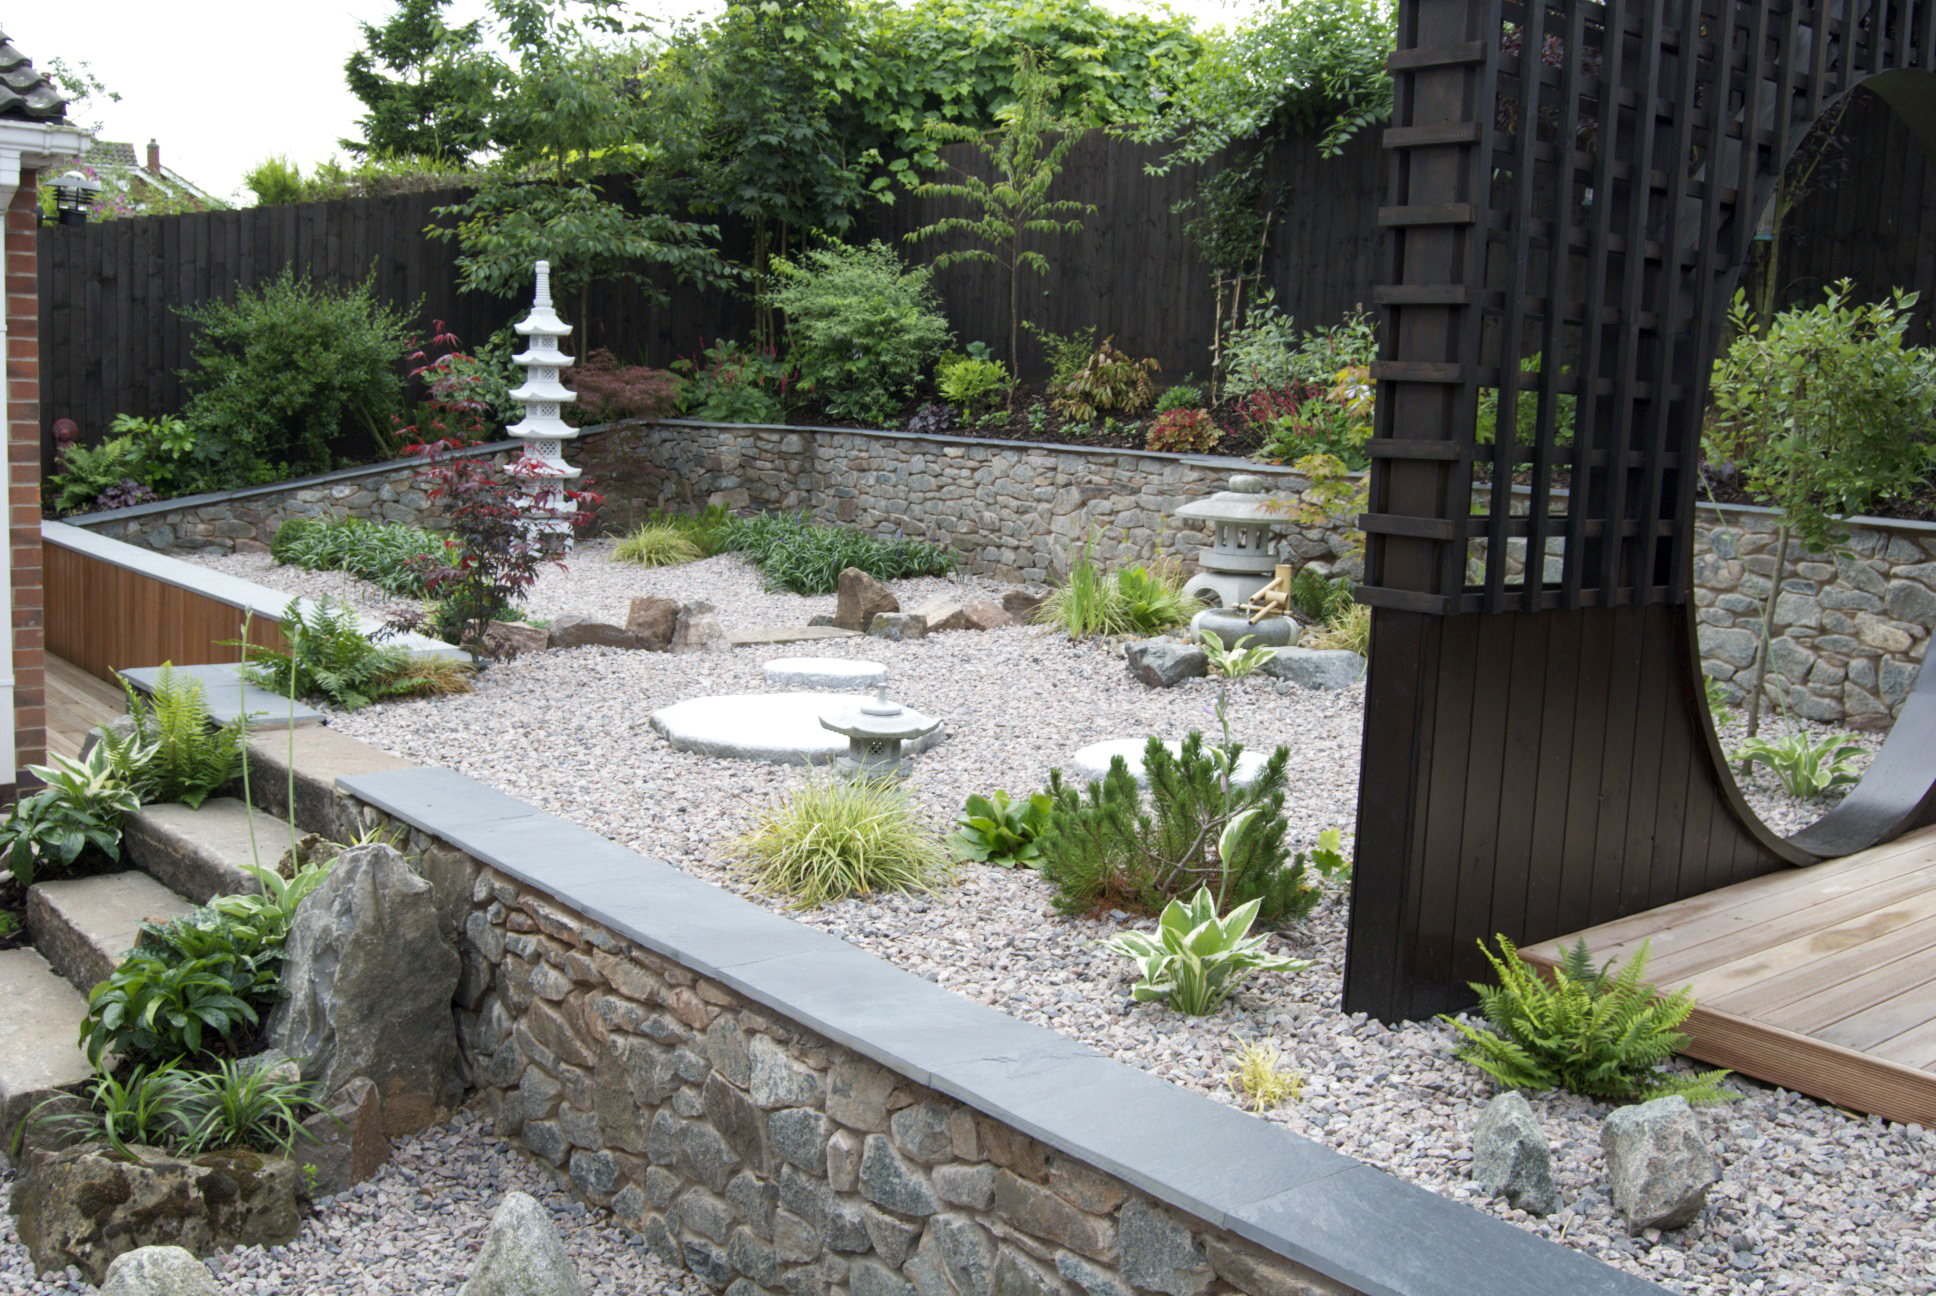 How To Make A Zen Garden In Your Backyard japanese garden design « japanese gardens for small and larger spaces